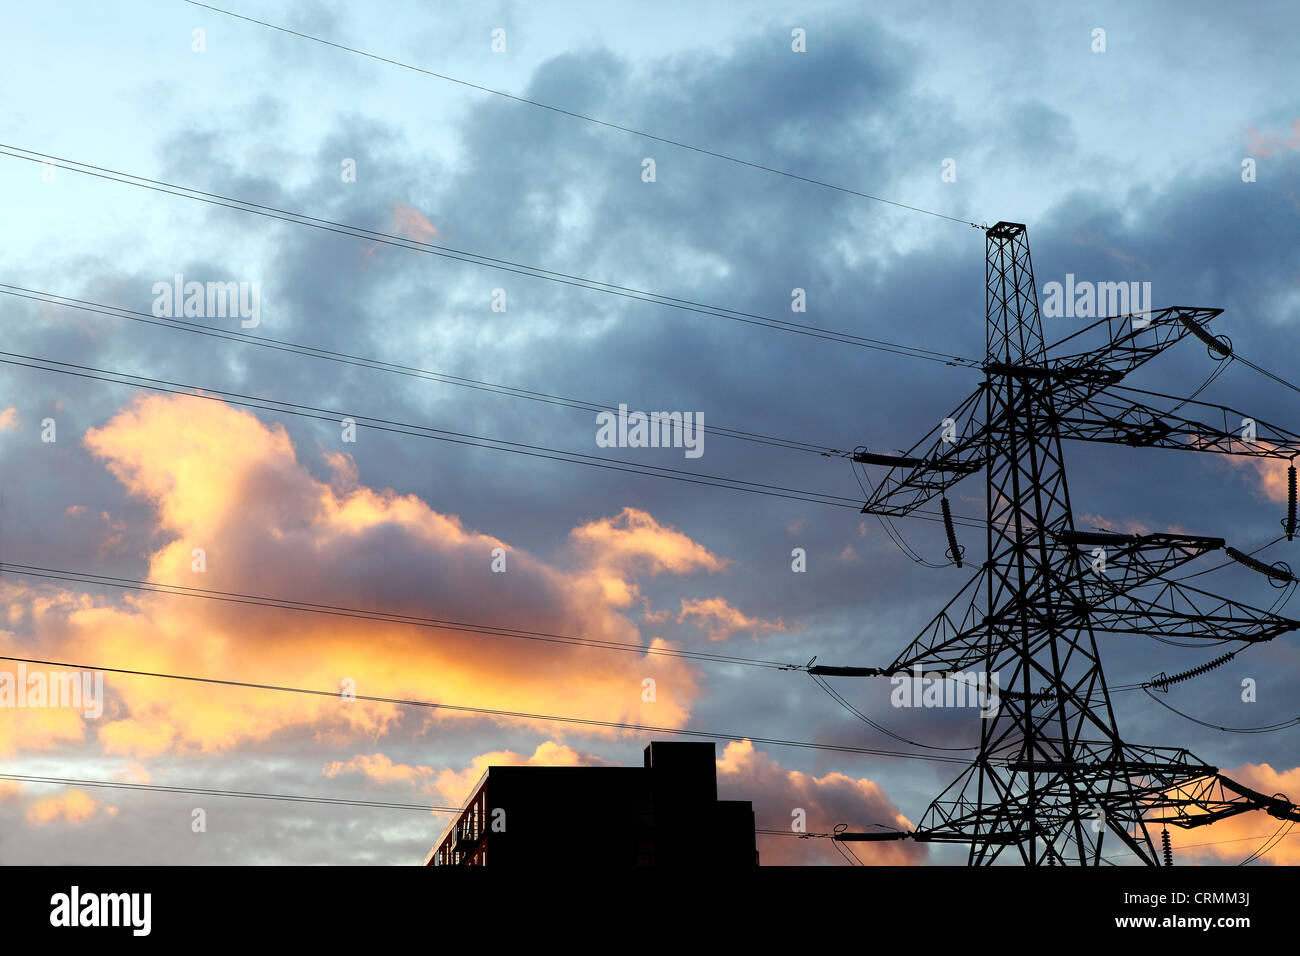 An electricity pylon against a cloudy sky at sunset - Stock Image